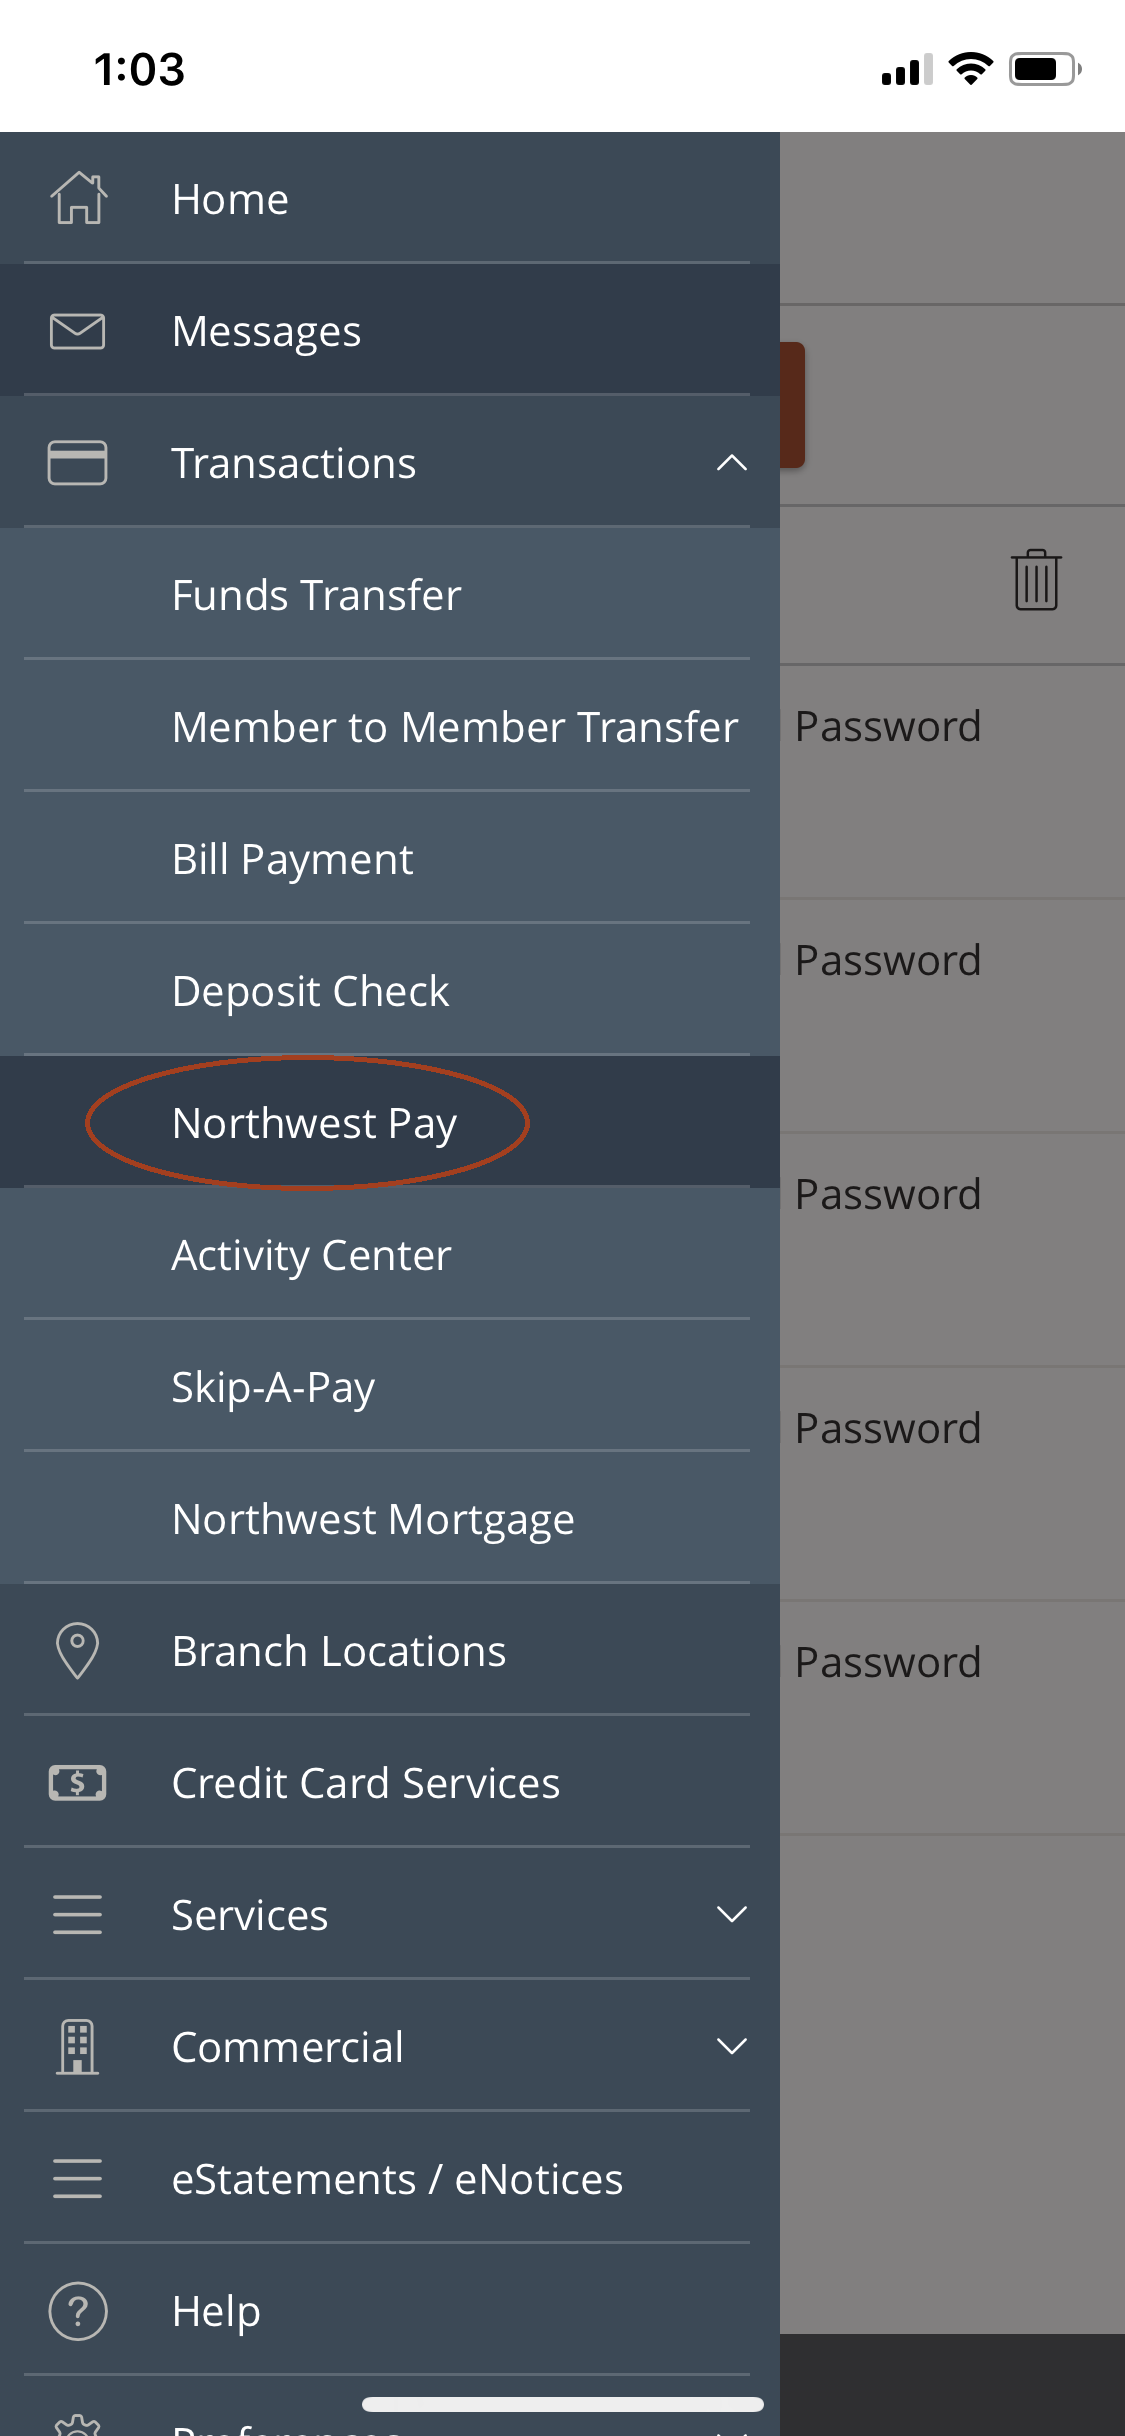 Northwest Pay location in the online banking menu